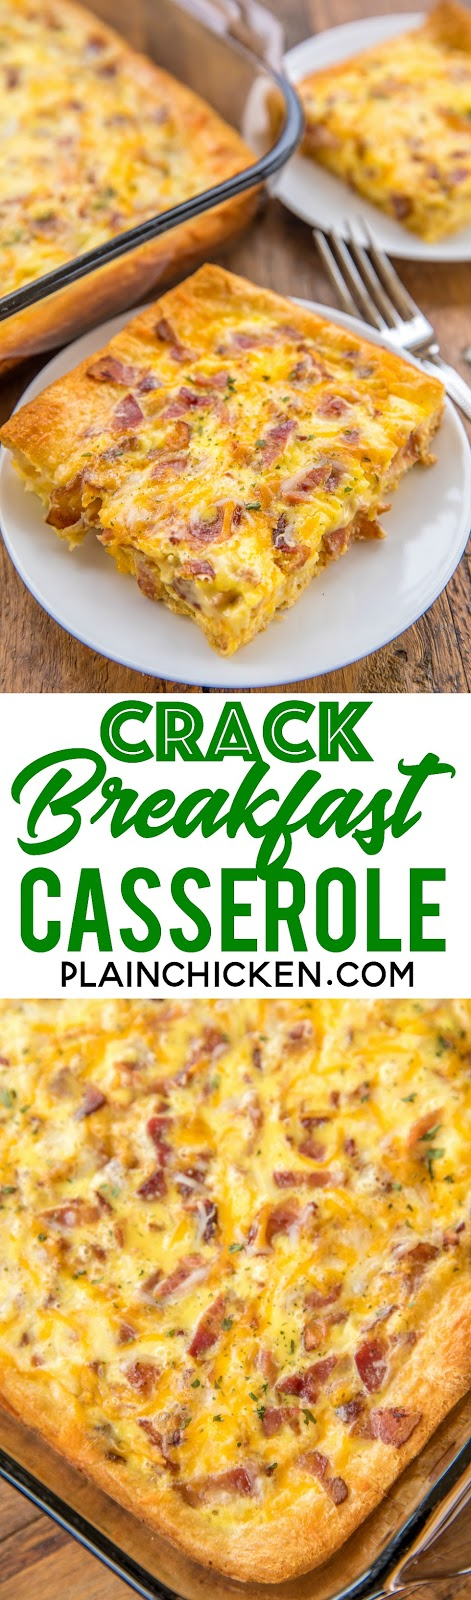 An Easy Biscuits and Gravy Crockpot Breakfast Casserole. By Krissy of B-Inspired Mama 29 Comments. This blog contains links to relevant products on Amazon for your convenience.